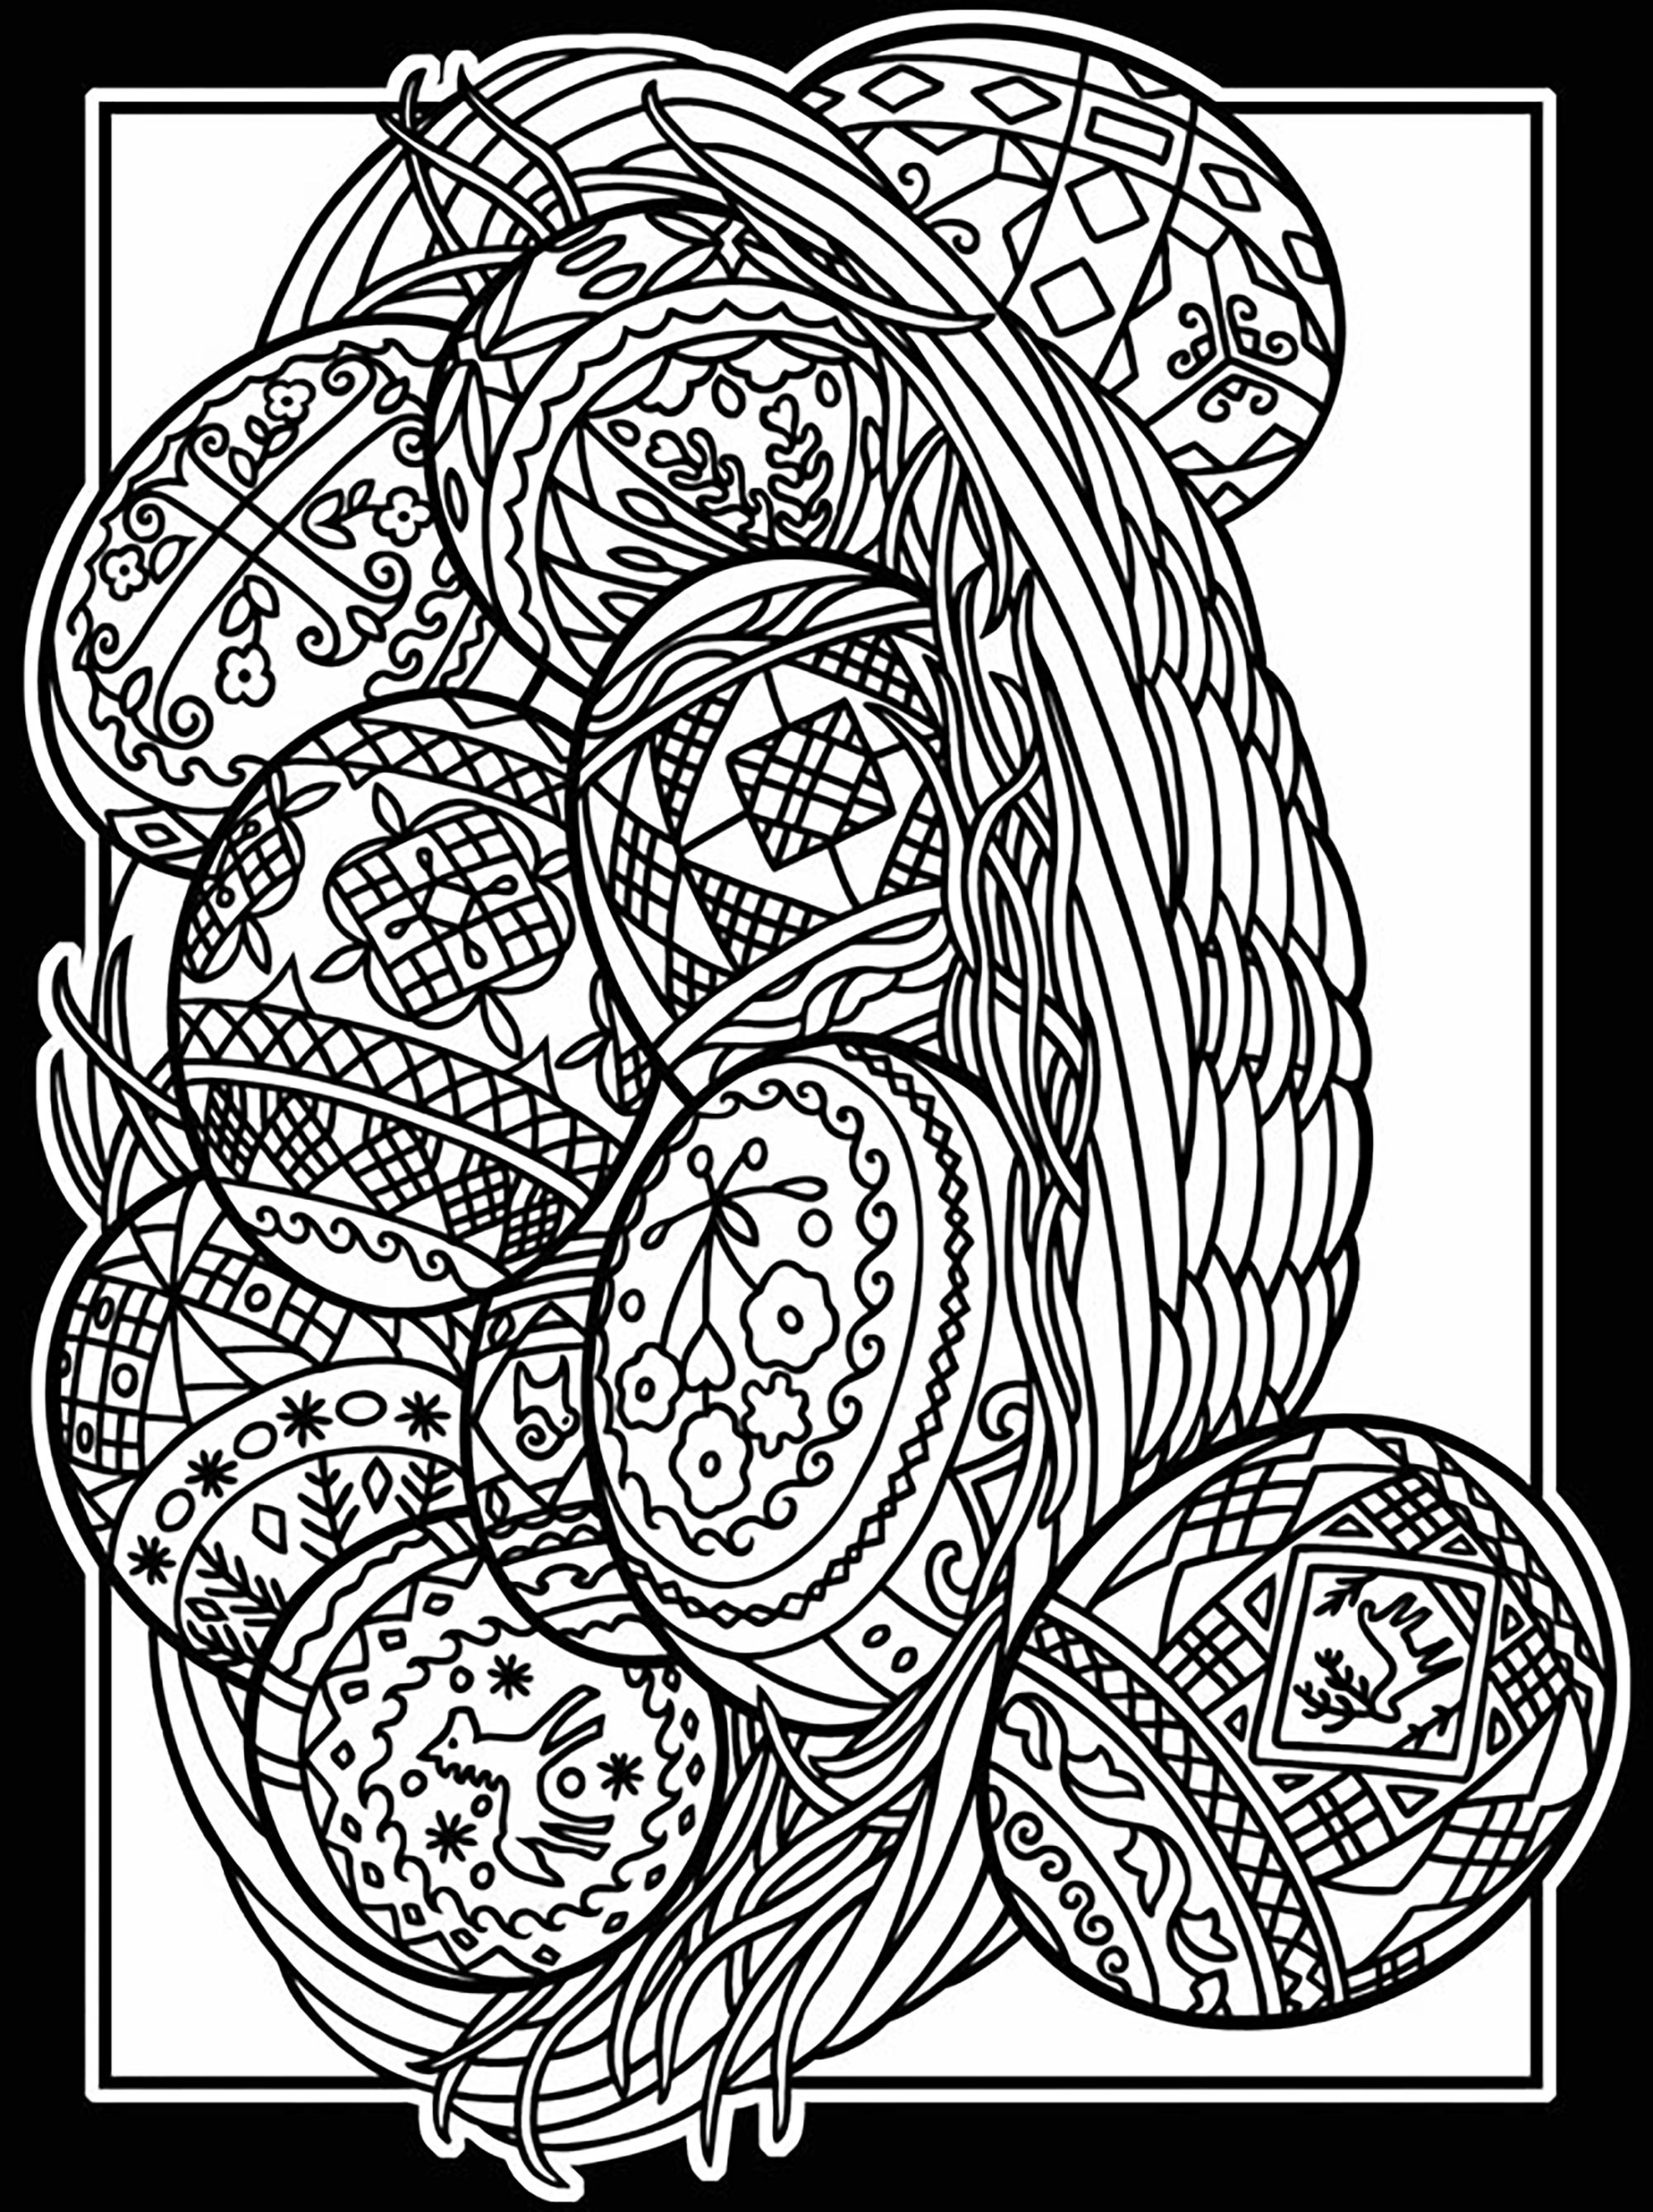 Easter eggs to print and color - Easter Adult Coloring Pages   free printable easter egg coloring pages for adults